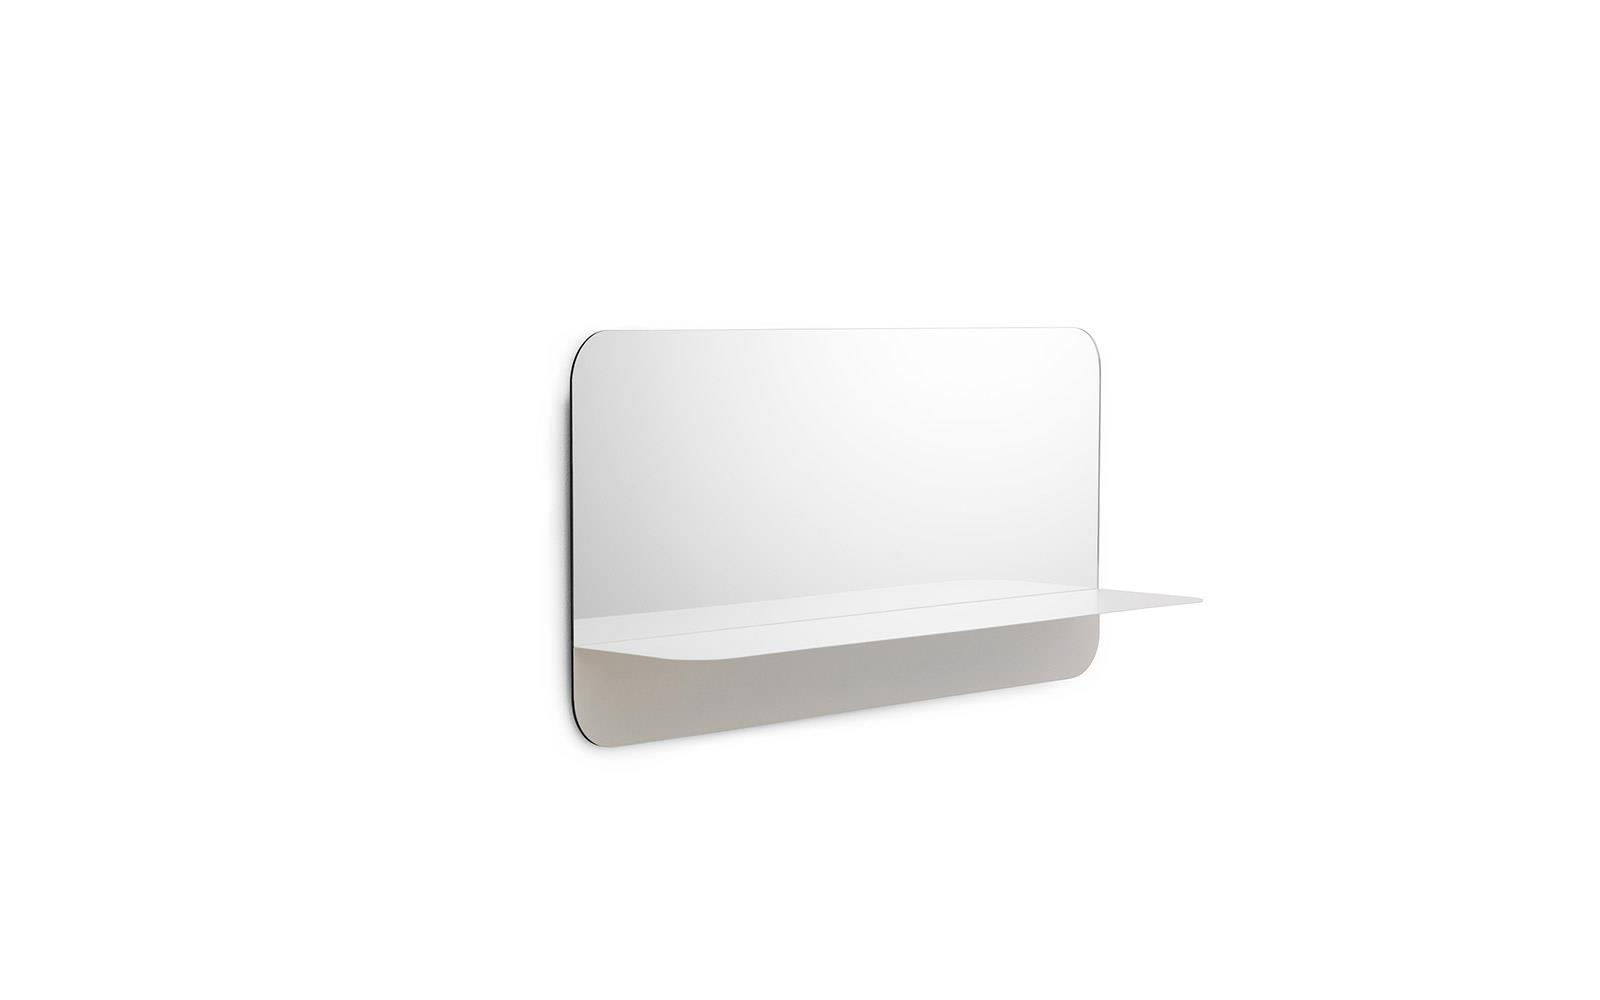 Horizon Mirror Horizontal1